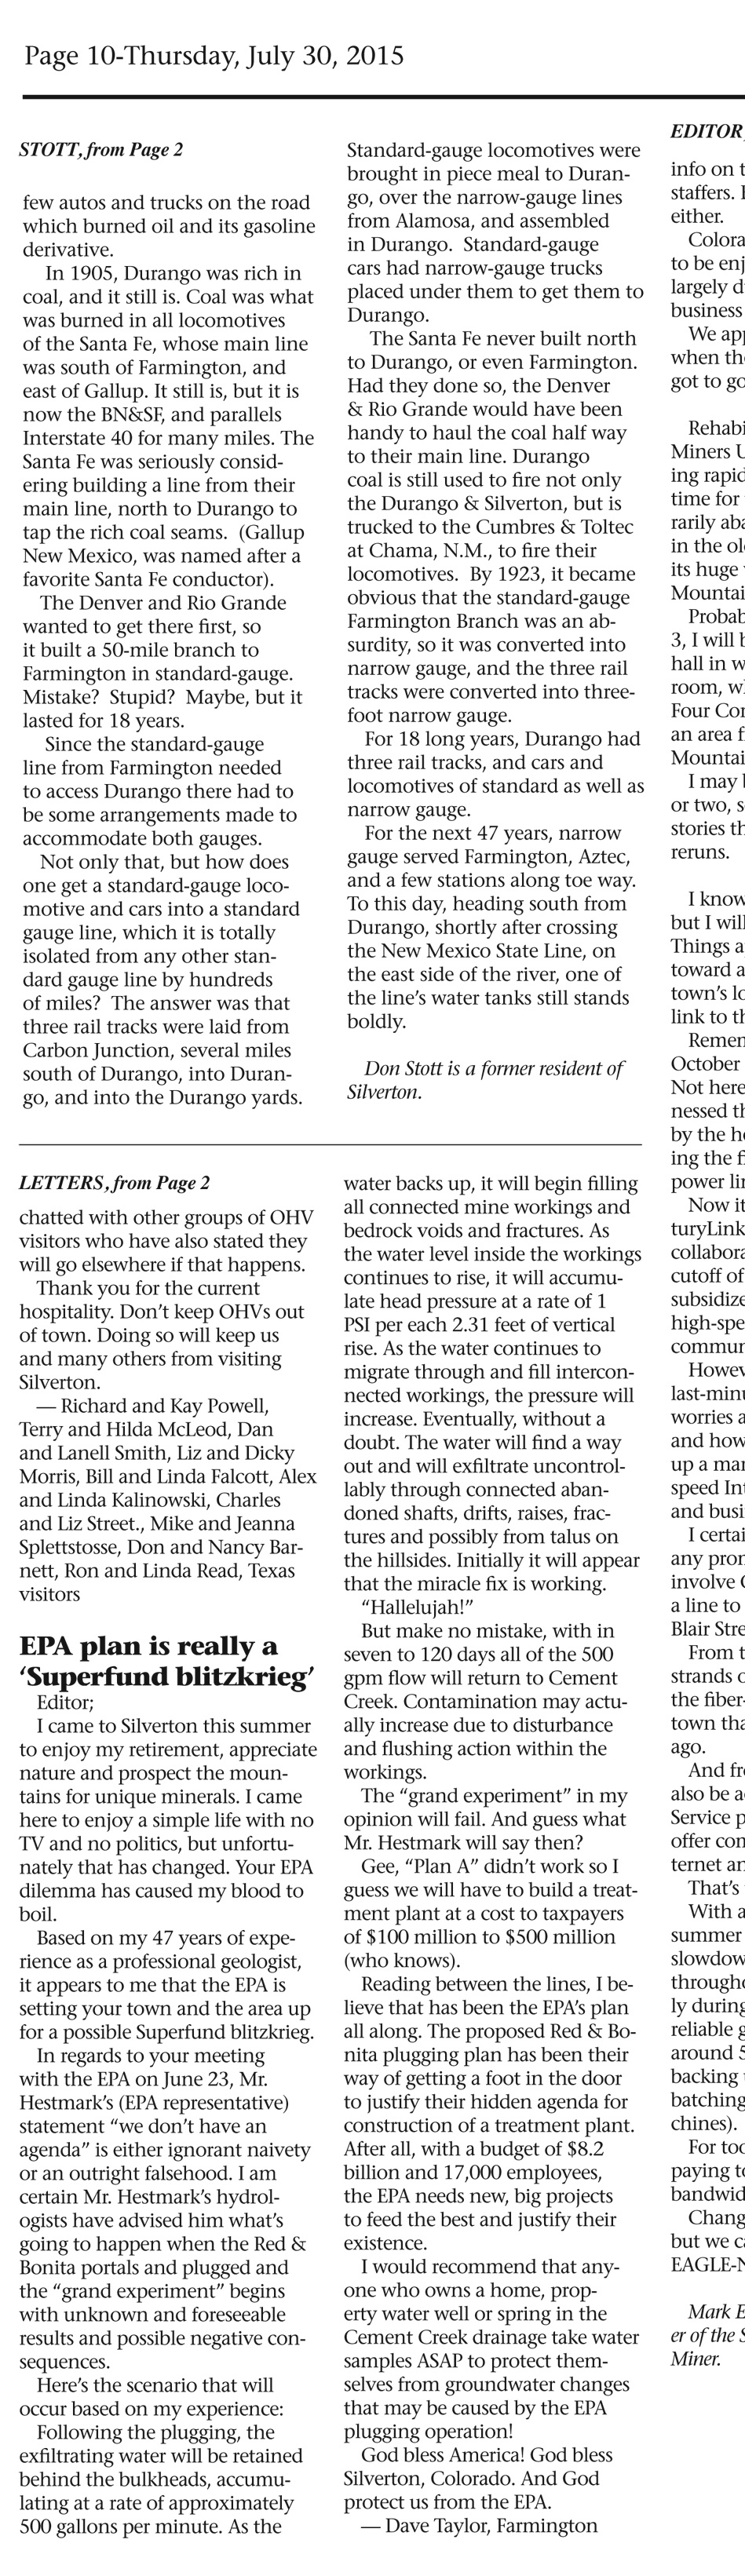 https://i0.wp.com/www.thegatewaypundit.com/wp-content/uploads/editorial-colorado-epa.jpg